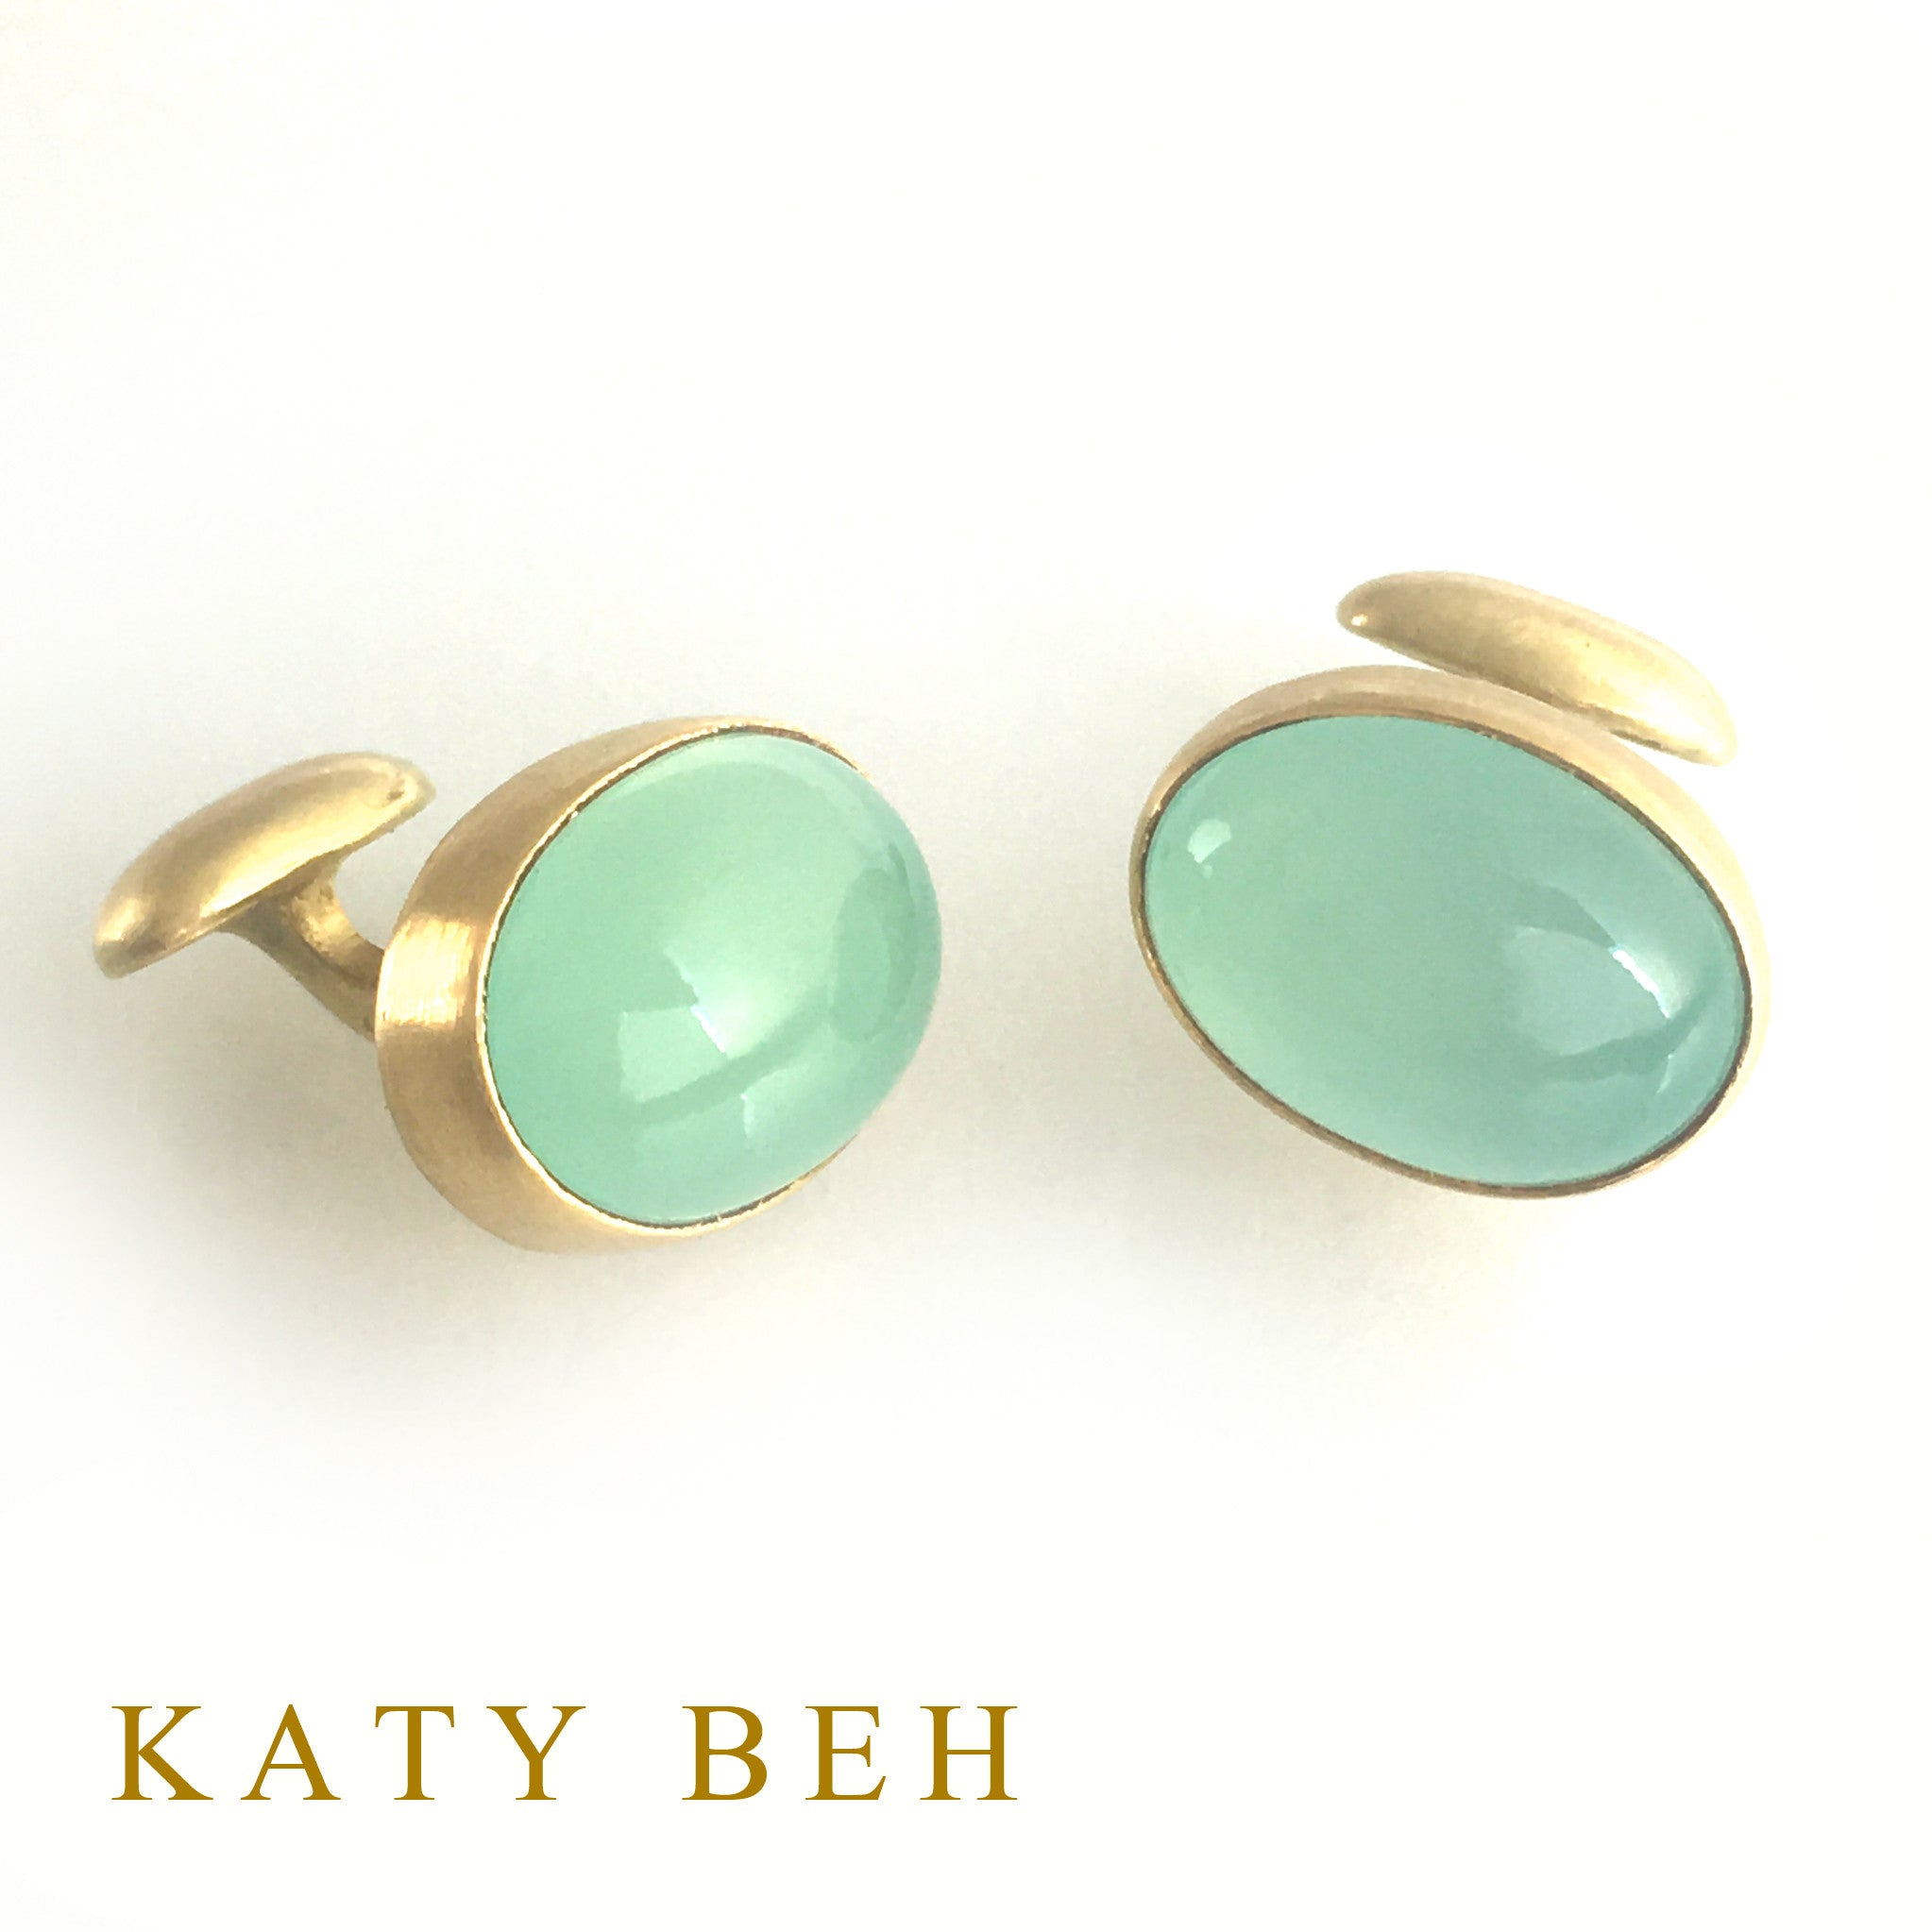 Men's - Katy Beh 22k Gold Handmade Jewelry New Orleans